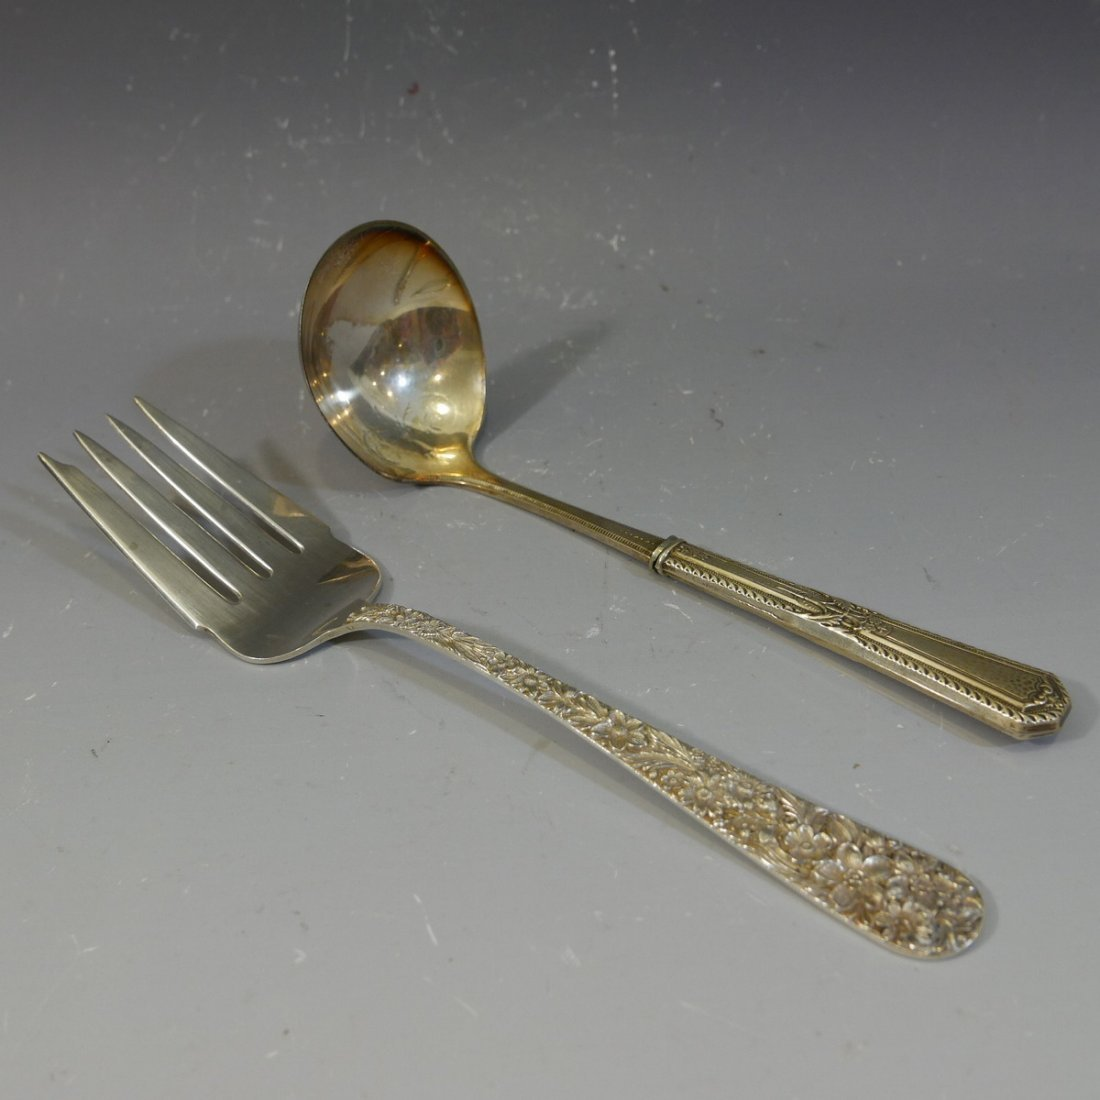 S KIRK STERLING SILVER LADLE WITH A SERVING FORK 140